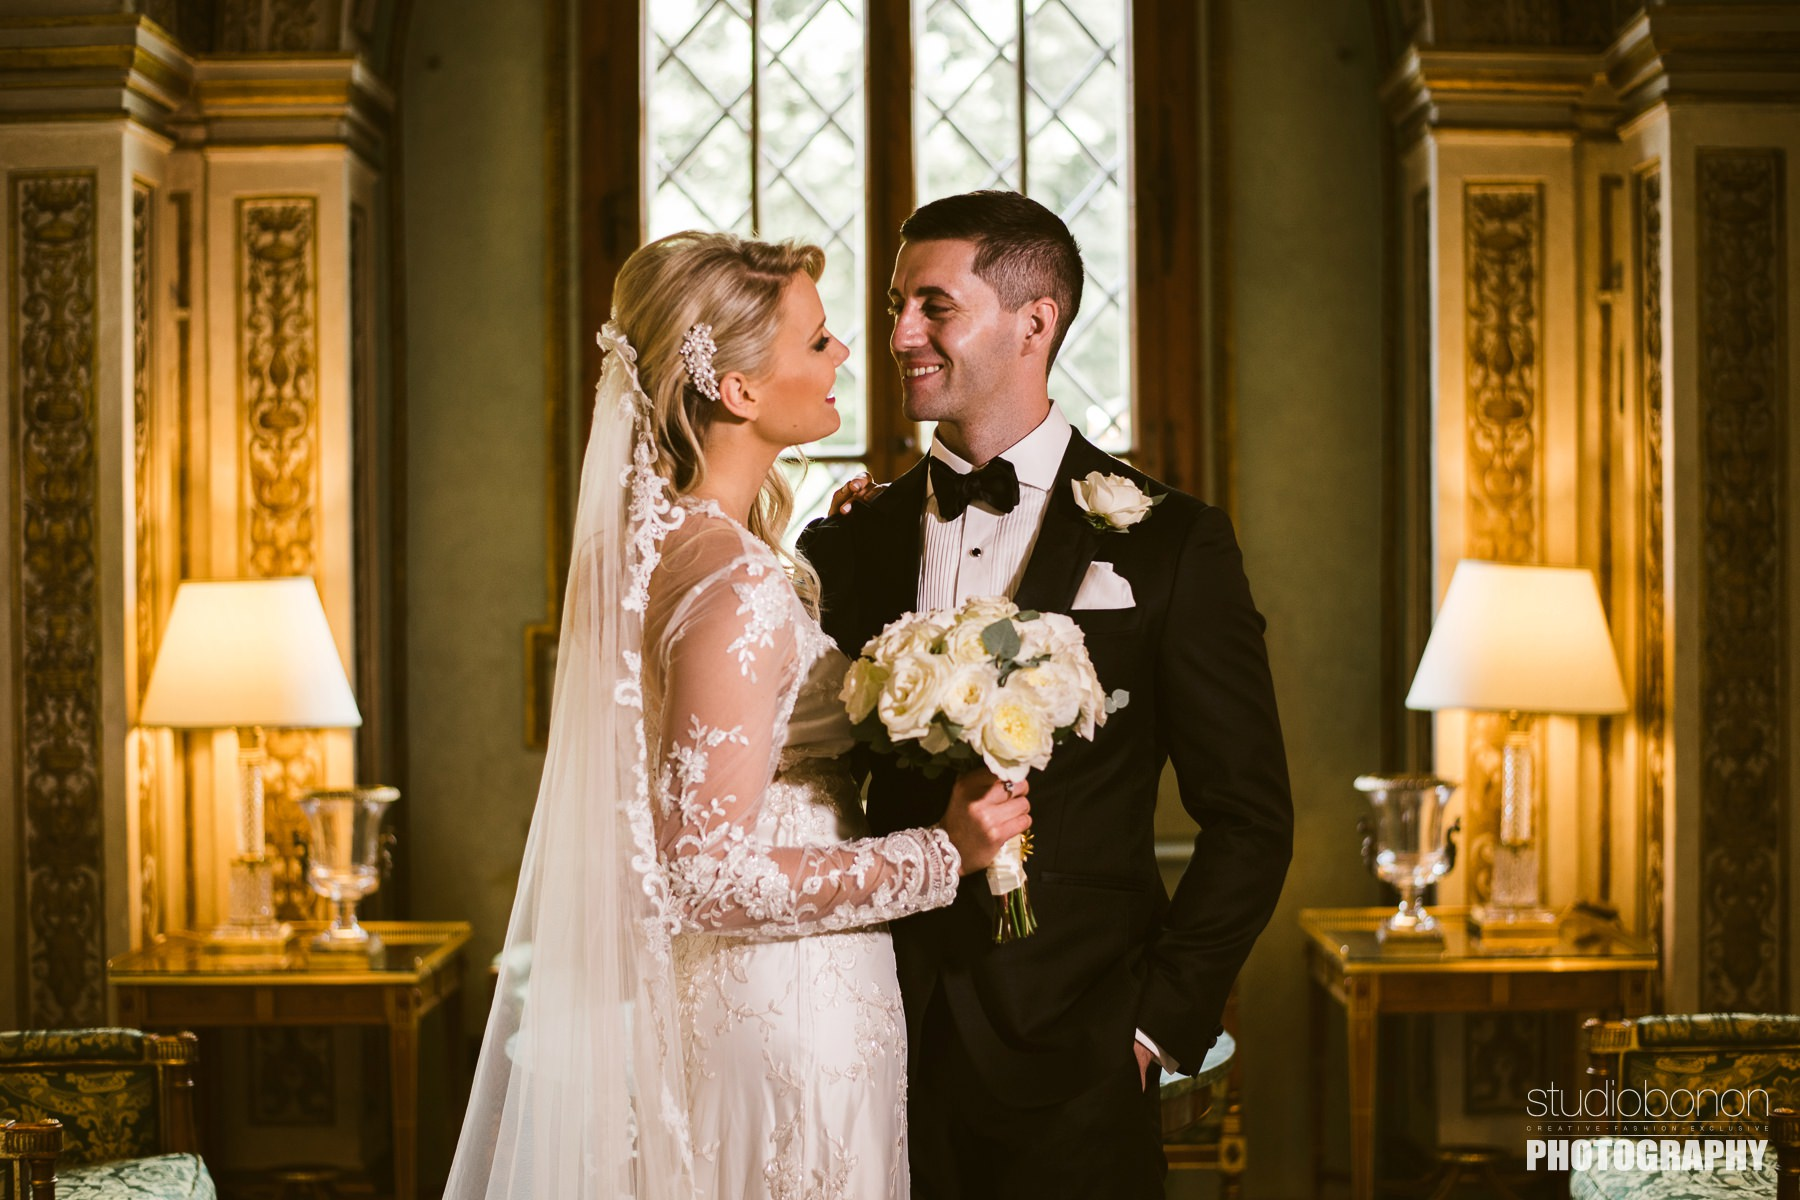 Lovely bride and groom portrait photo into the small chapel at Hotel Four Seasons Florence